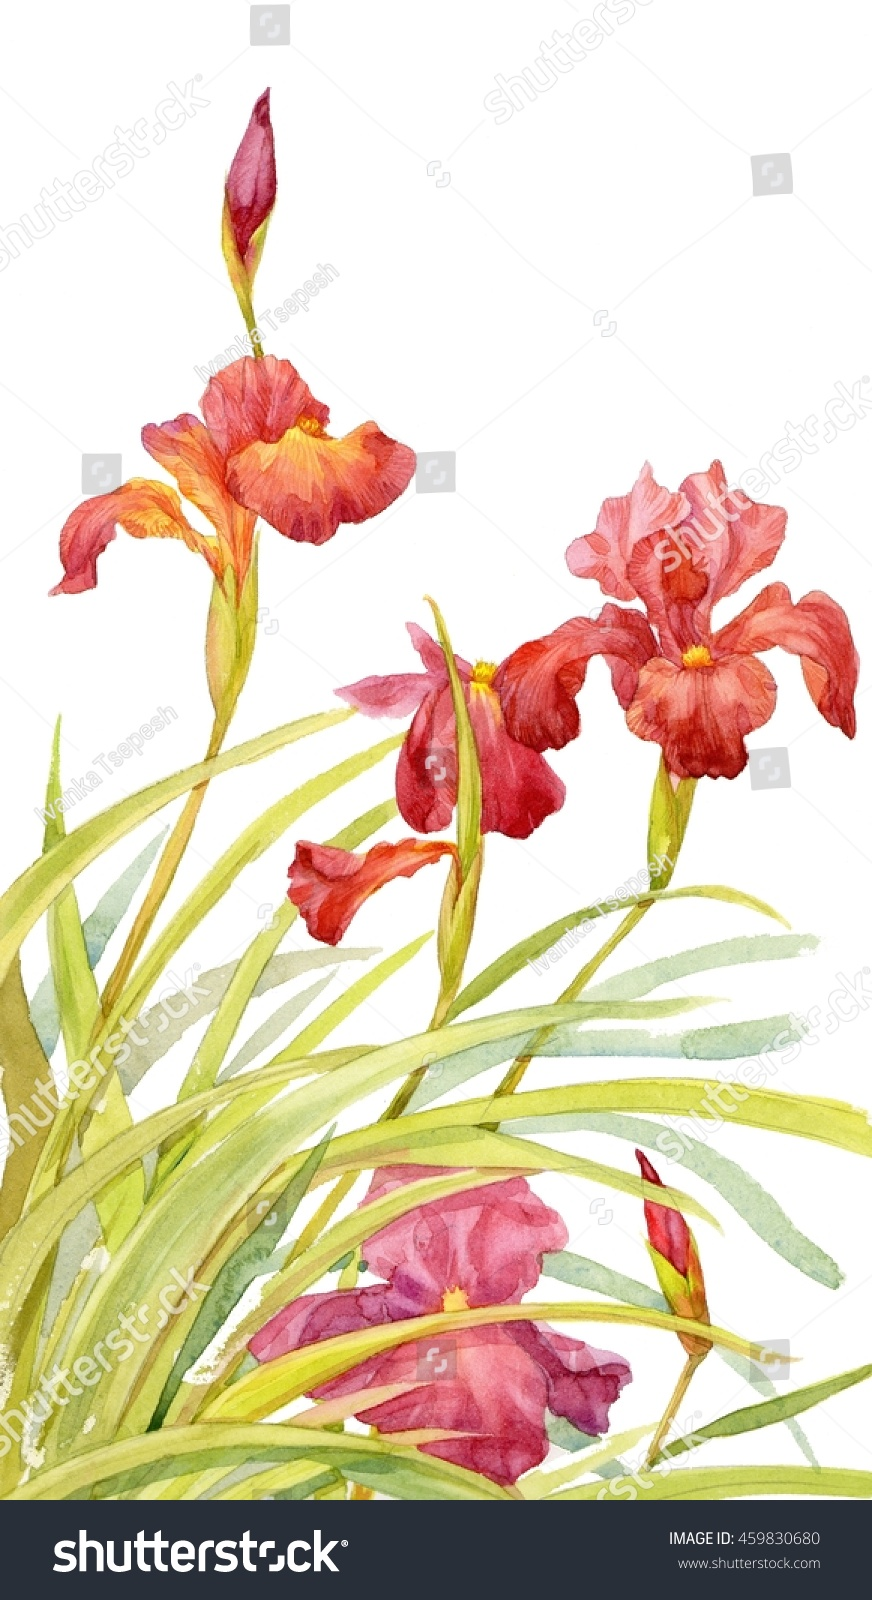 Watercolor Red Iris Flowers Illustration Stock Illustration